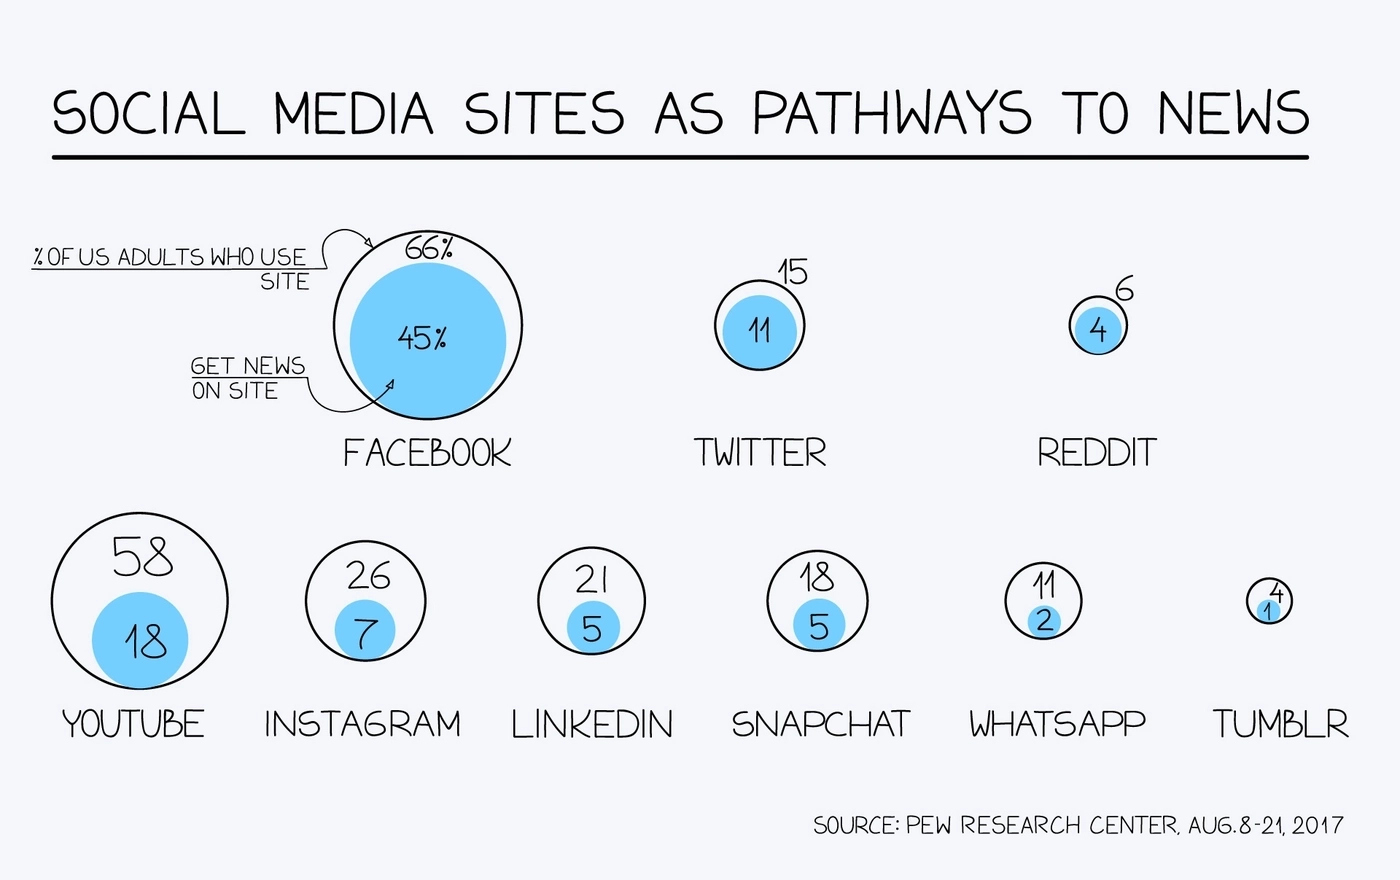 Social media as pathways to news